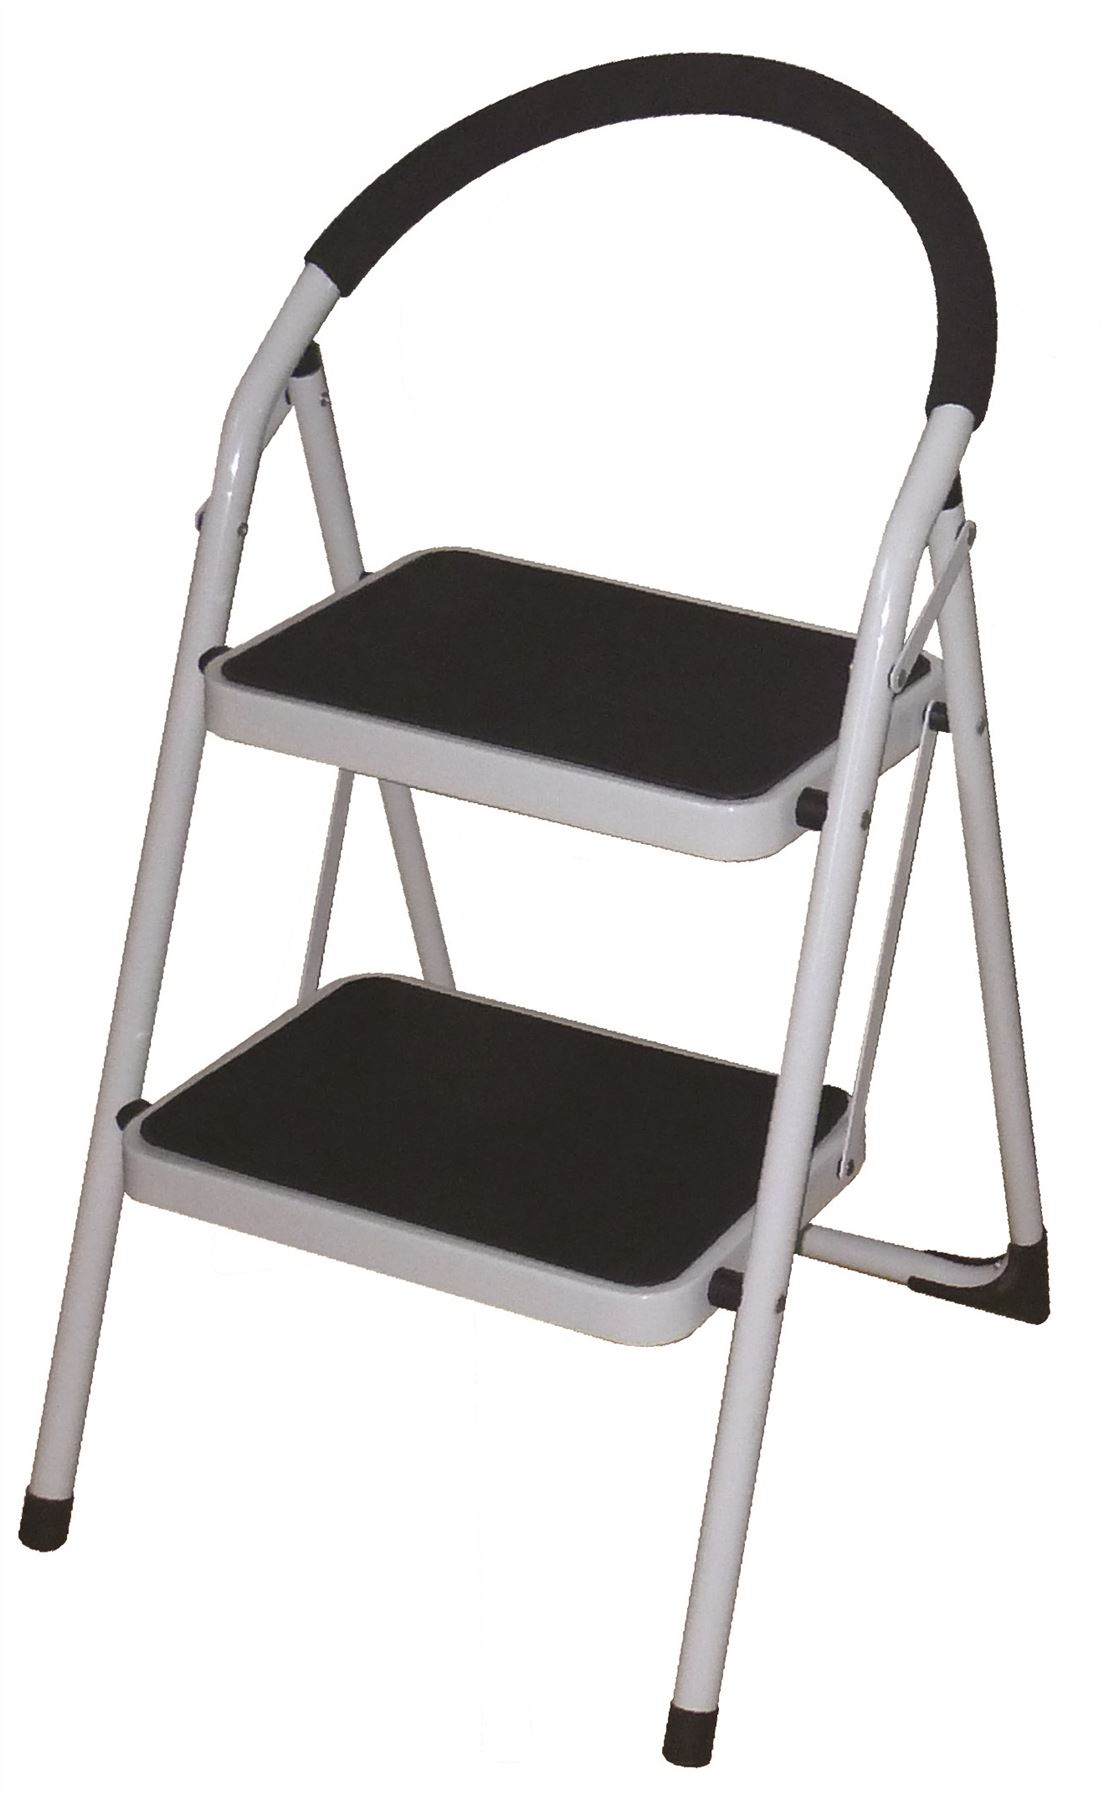 New Foldable 2 Amp 3 Steel Step Ladder Non Slip Plastic Tips